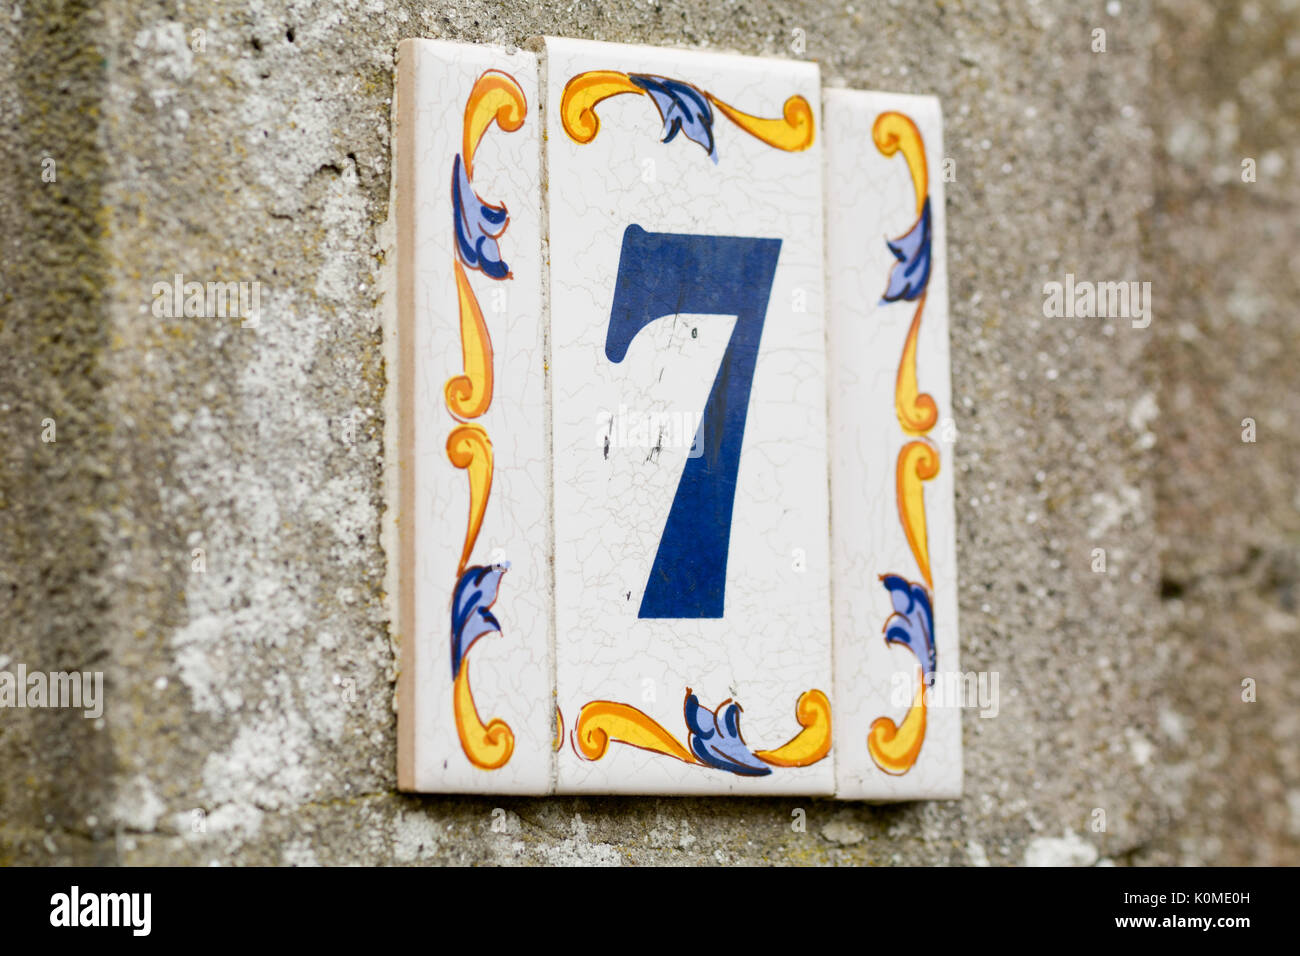 Ceramic tile house number stock photos ceramic tile house number house number 7 sign on ceramic tile stock image dailygadgetfo Images